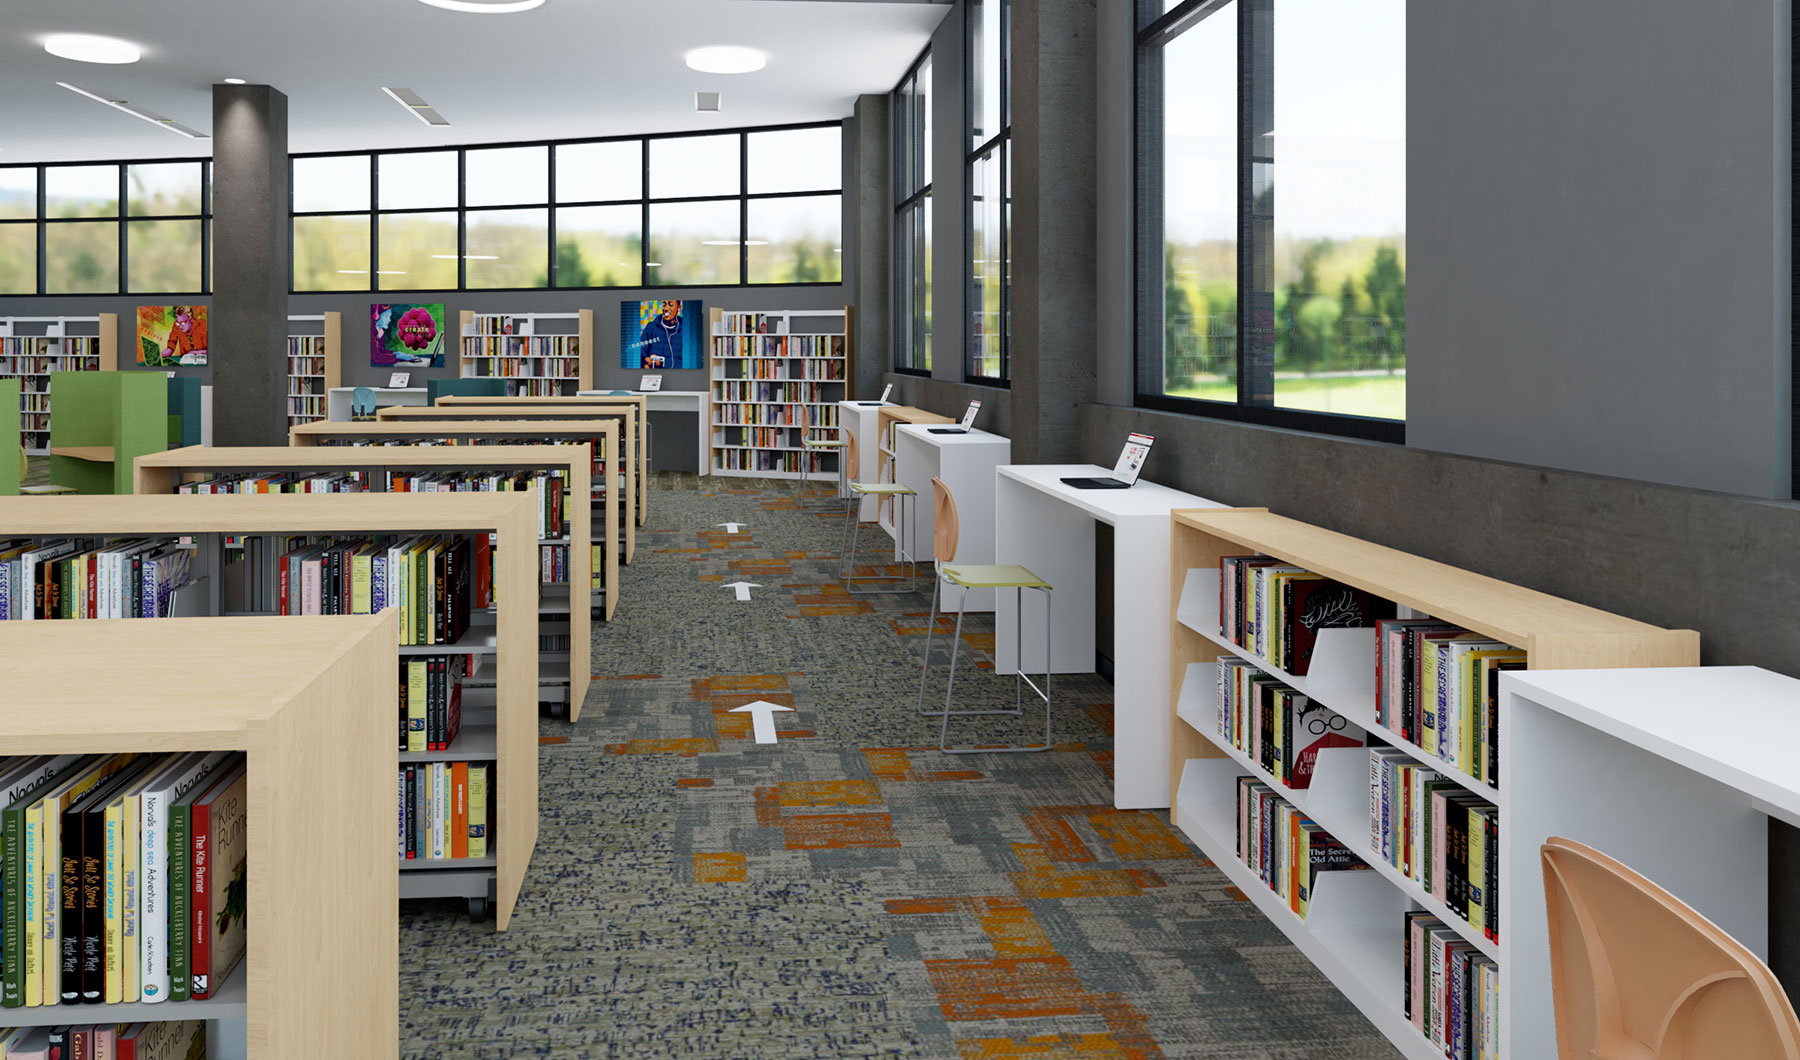 Public Library Designed for Social Distancing